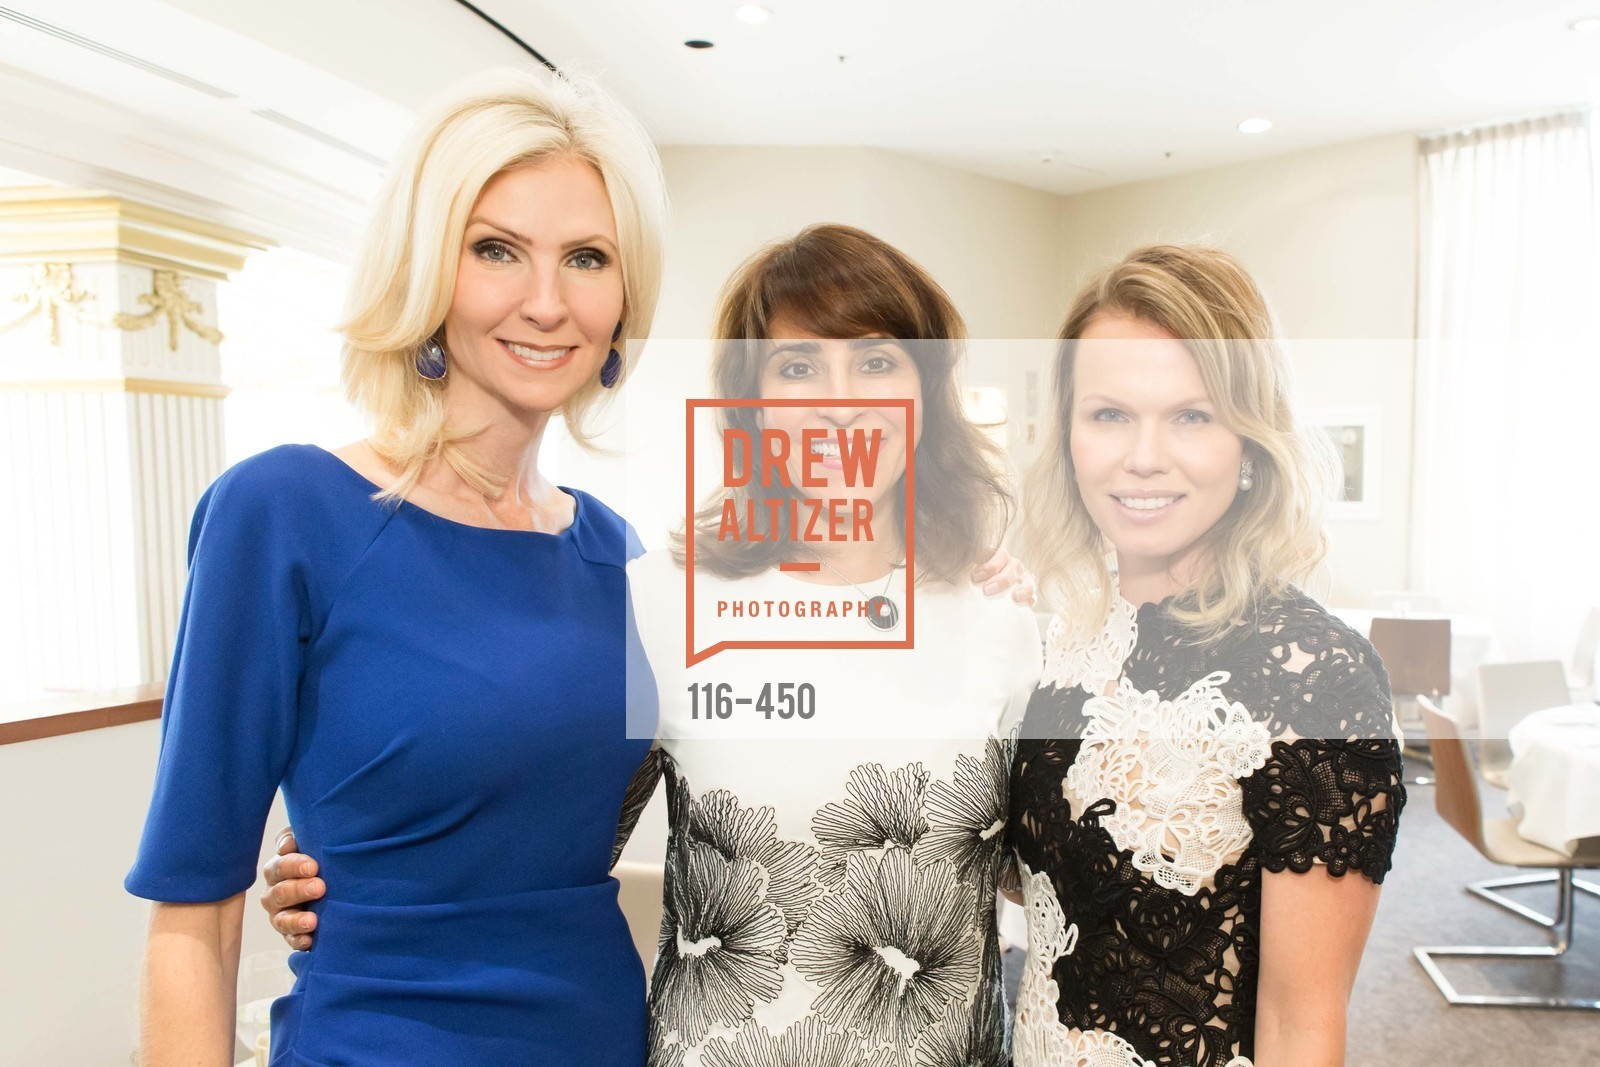 Lora Peterson, Katherine Simon, Claire Fluhr, Lela Rose Book Signing and Luncheon at Neiman Marcus, Neiman Marcus, November 5th, 2015,Drew Altizer, Drew Altizer Photography, full-service agency, private events, San Francisco photographer, photographer california